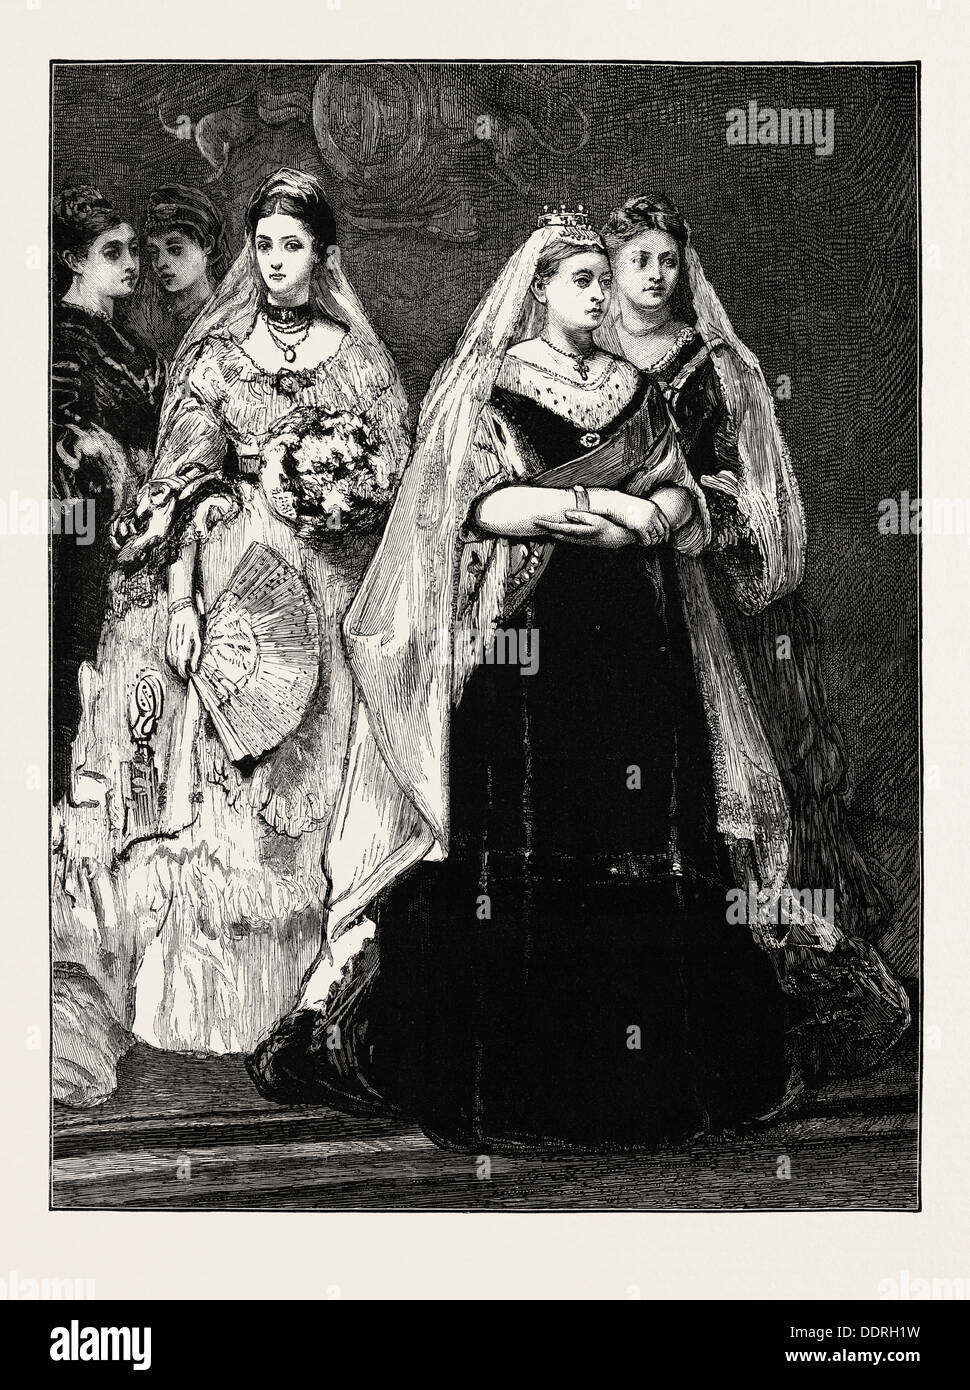 ENGLAND, QUEEN VICTORIA, UK, 1873 engraving - Stock Image